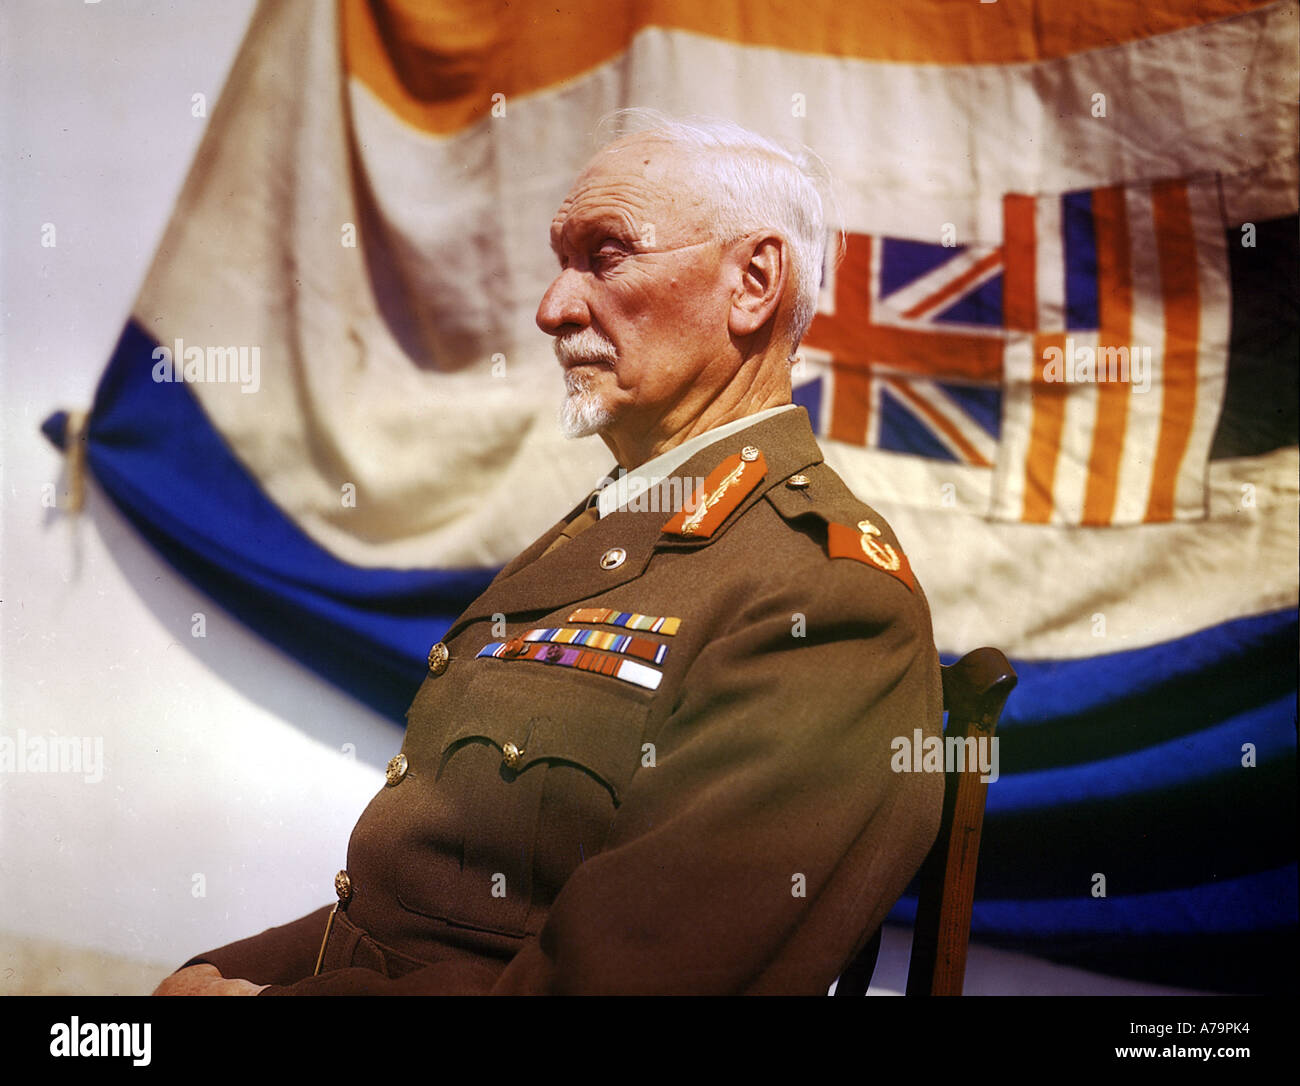 JAN CHRISTIAN SMUTS 1870 to 1950 South African statesman and Field Marshall here about 1943 - Stock Image